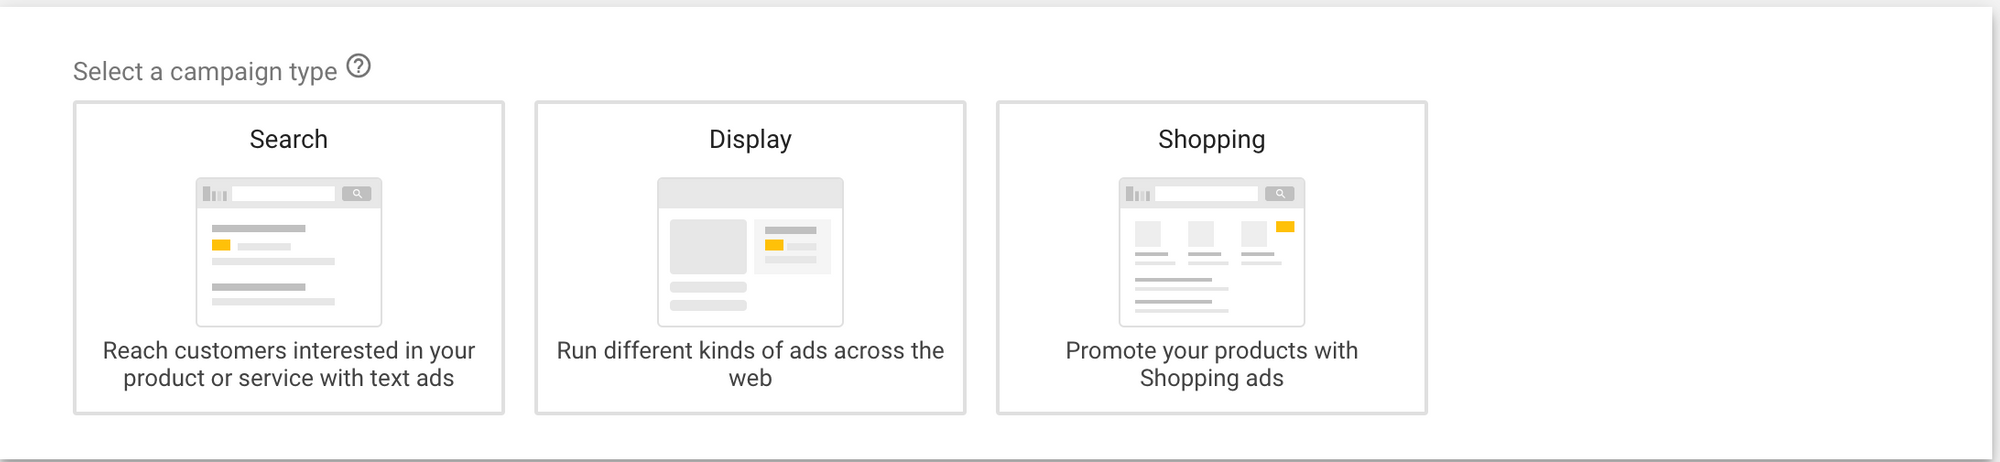 Google Ads Campaign Type